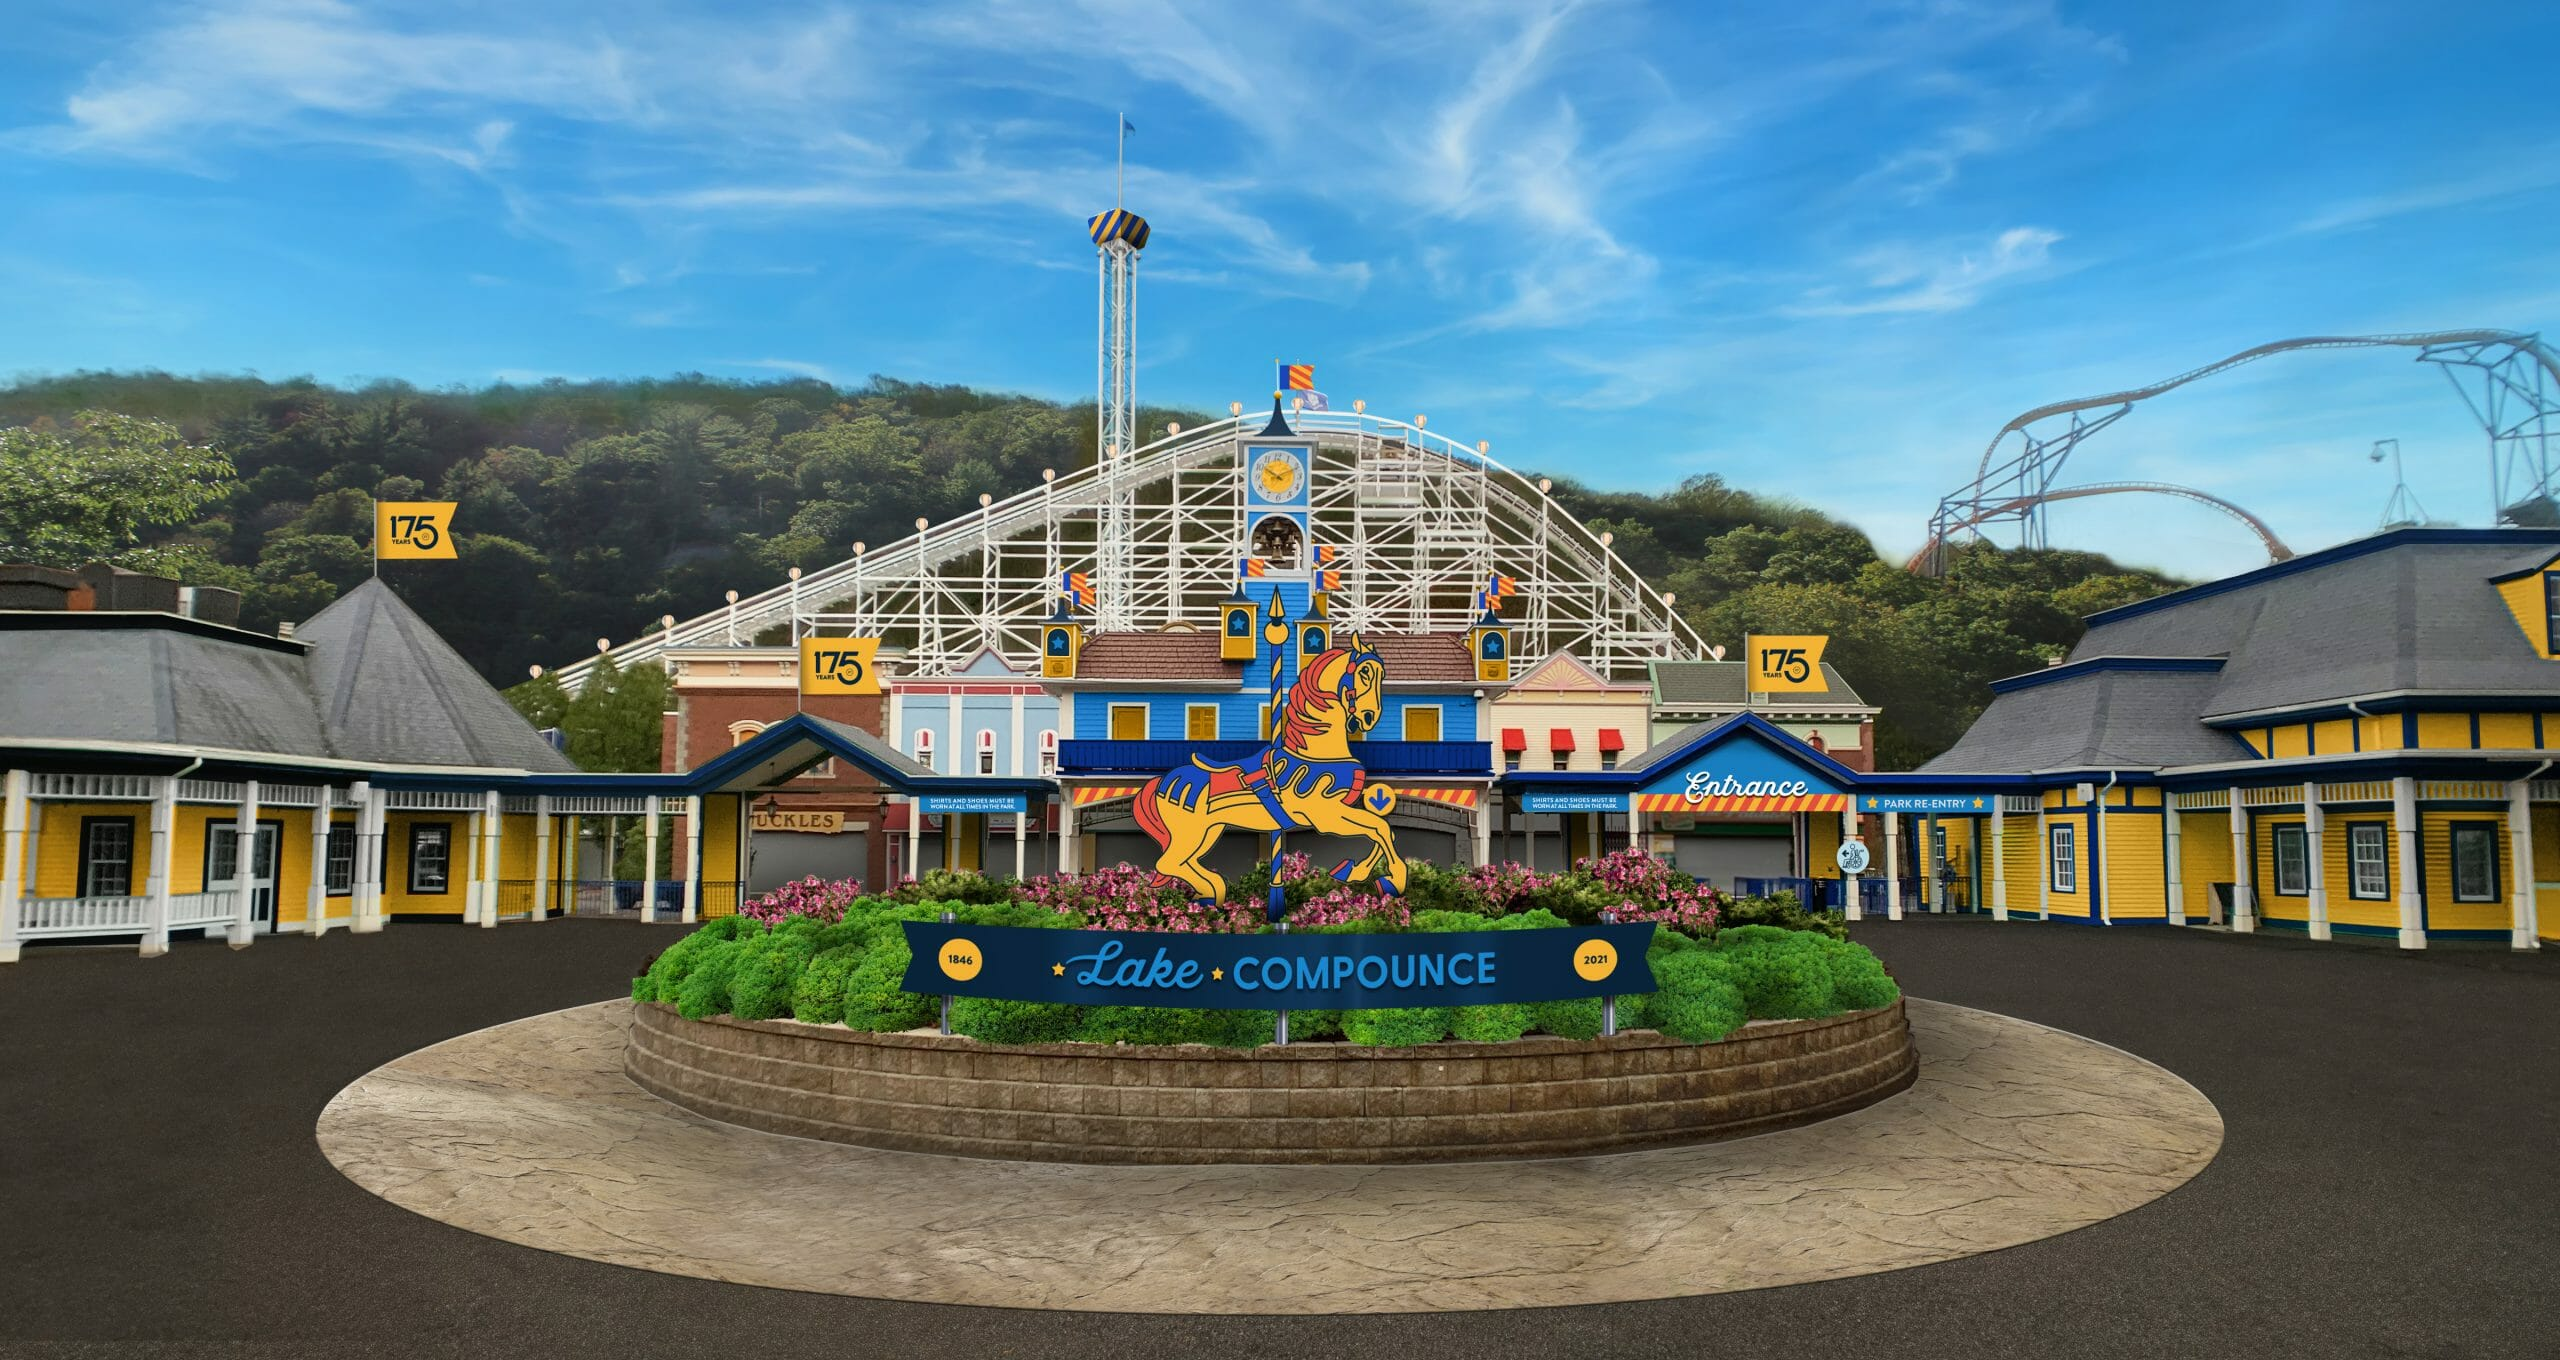 Lake Compounce To Debut Massive Transformation For 175th Anniversary